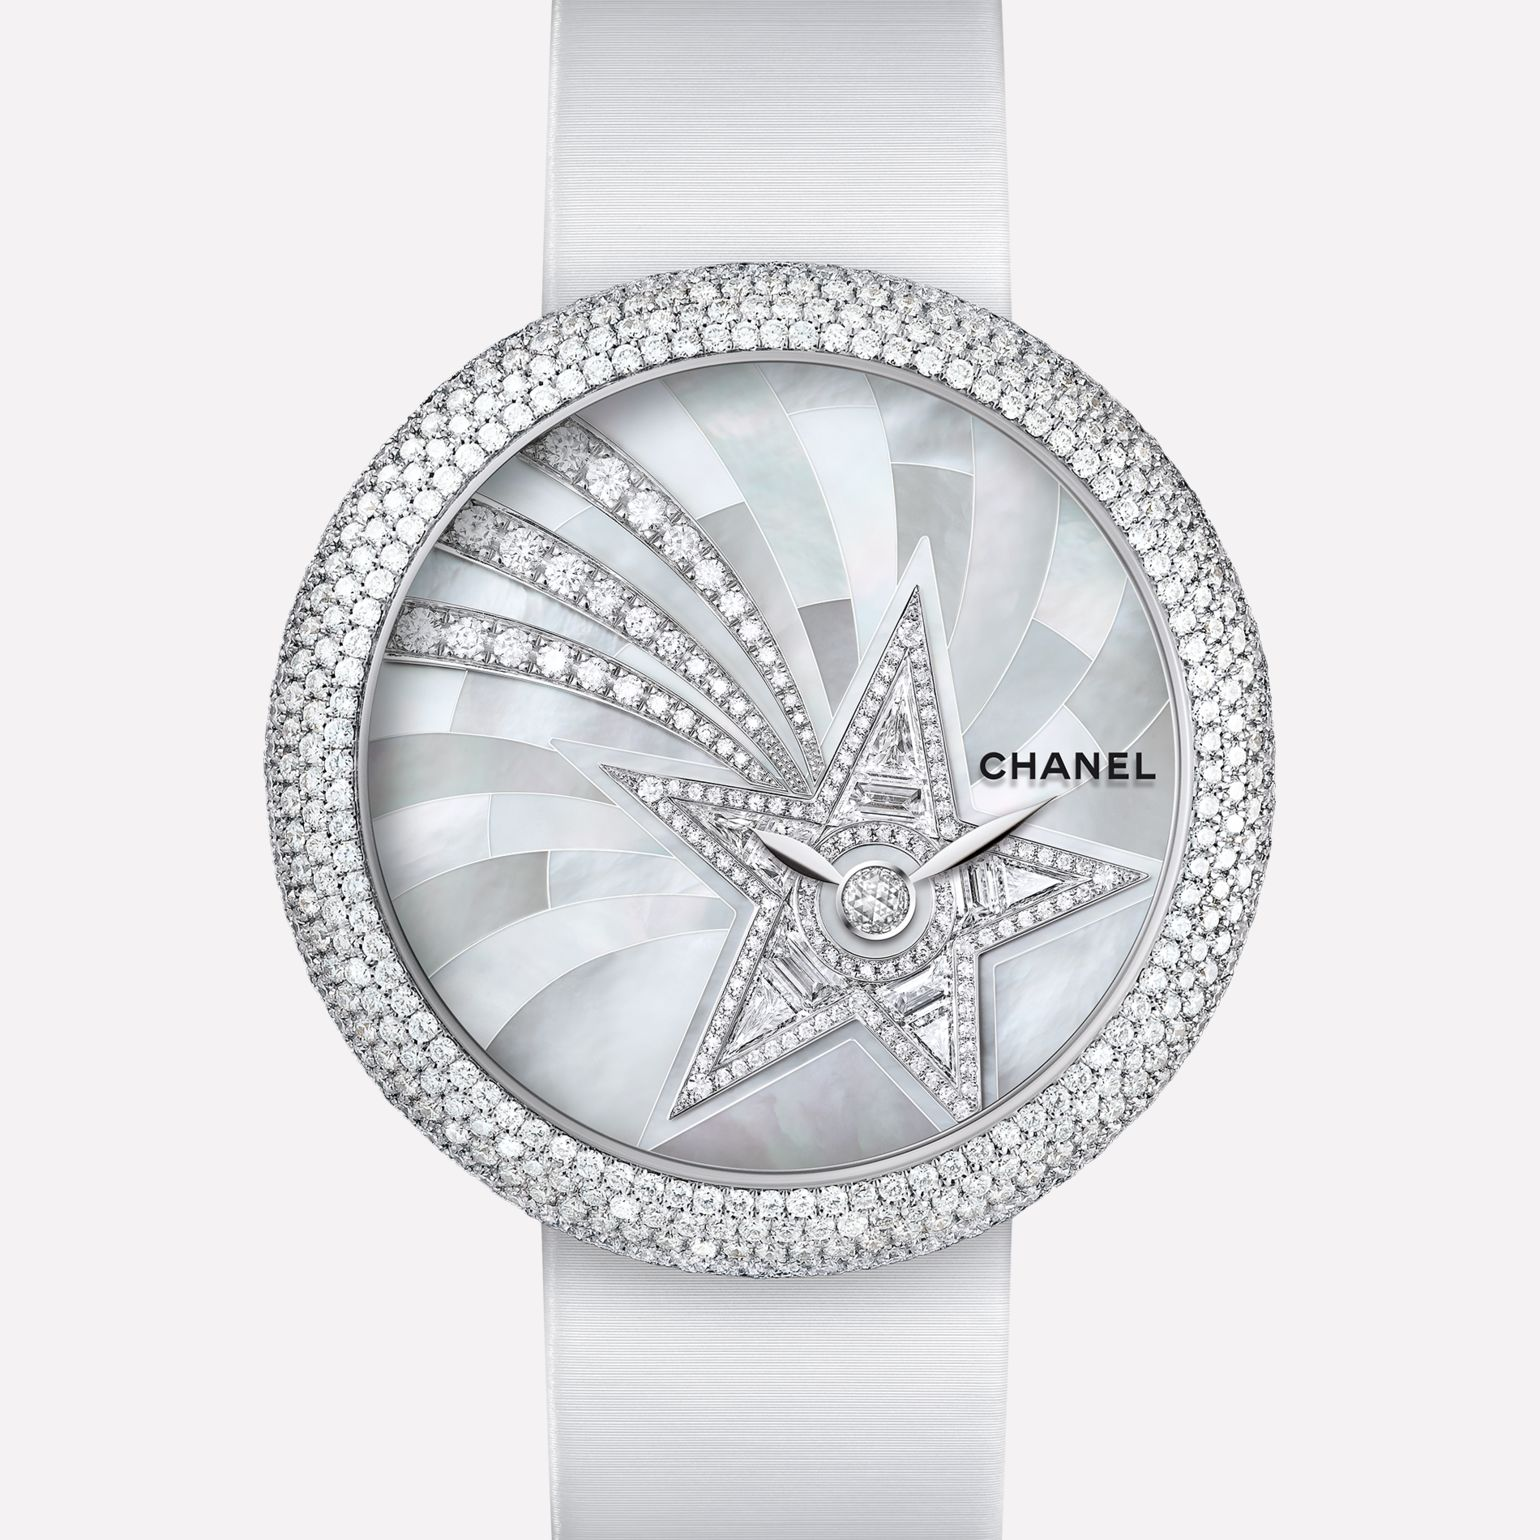 Mademoiselle Privé Watch Bijoux de Diamants Comète jewelry - Pearl marquetry and diamonds